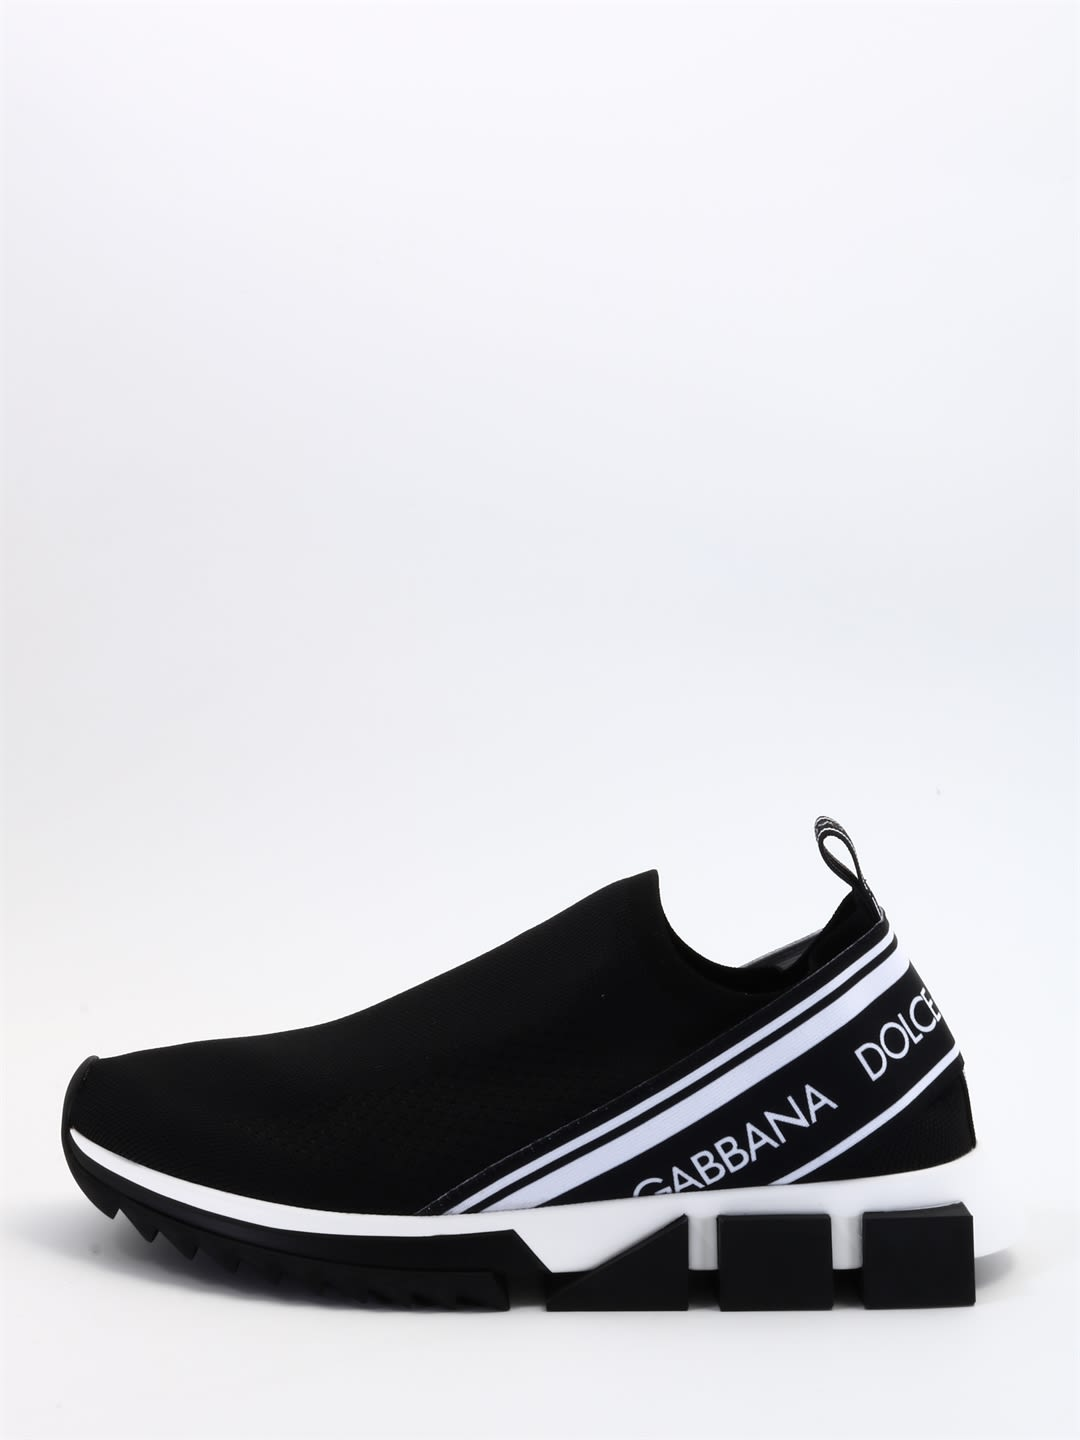 Dolce & Gabbana Sneakers Sorrento Black